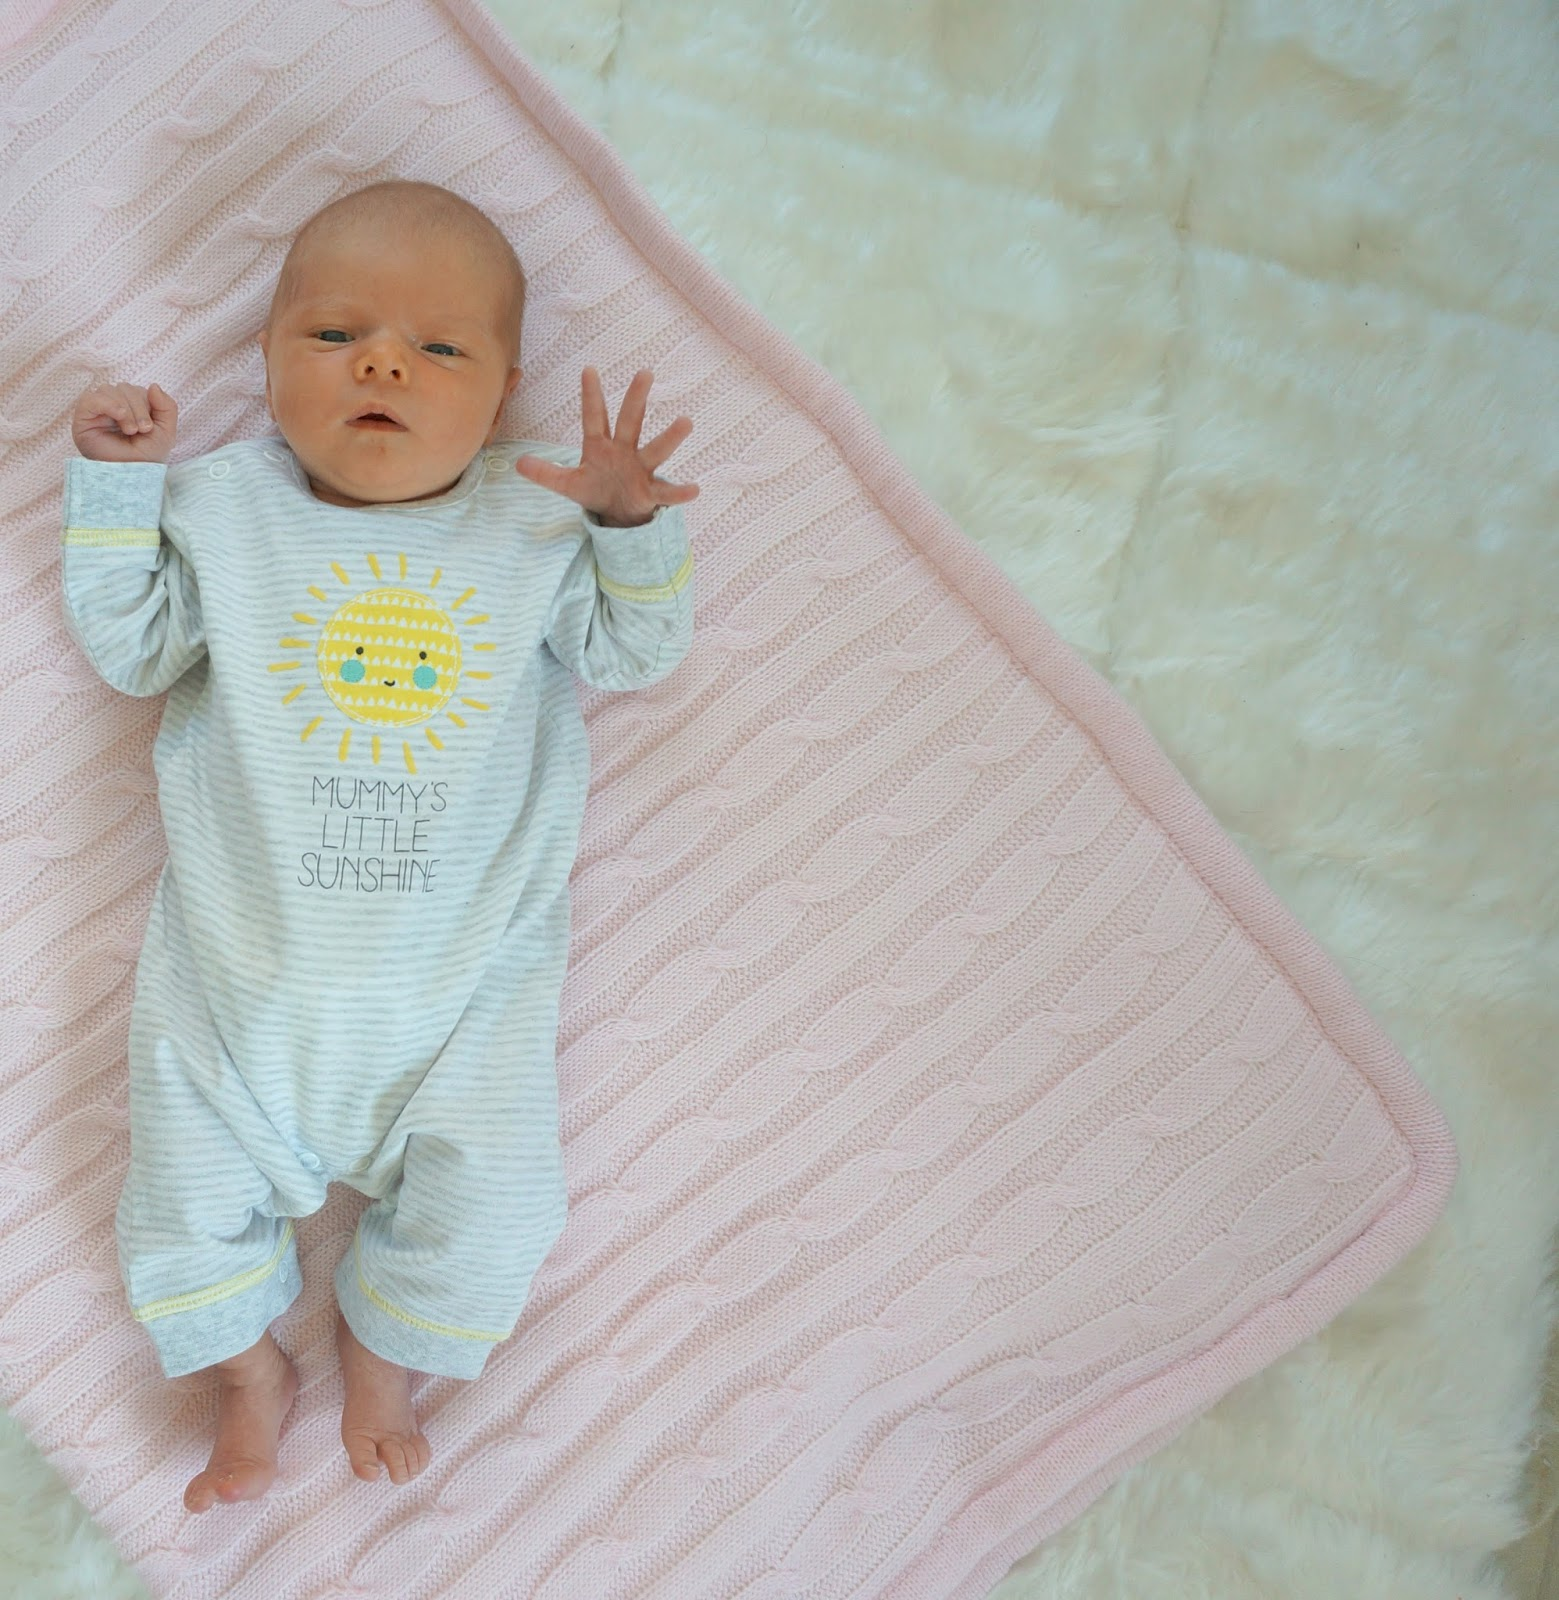 Introducing Baby Sunshine: Sophia's Birth Story